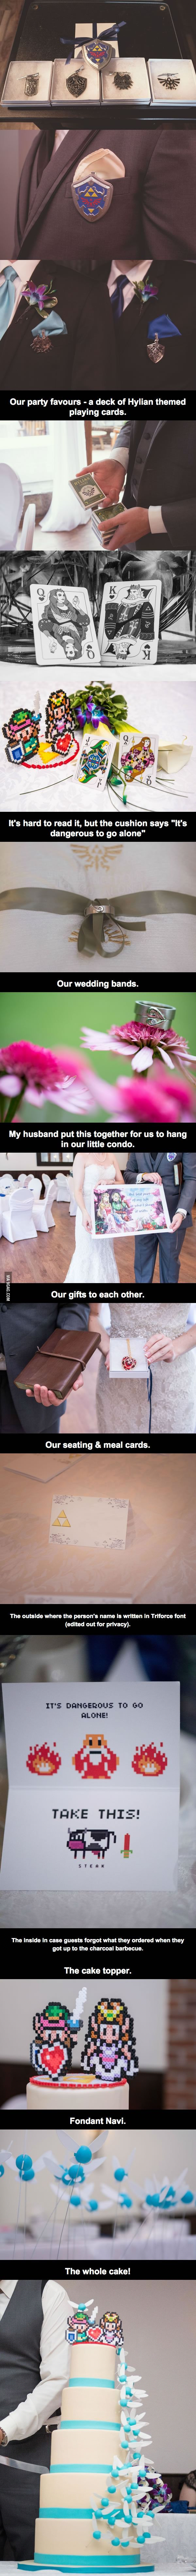 Perfect The Legend of Zelda wedding• I NEED IT!!! stealing some of these >_> <_< >_<